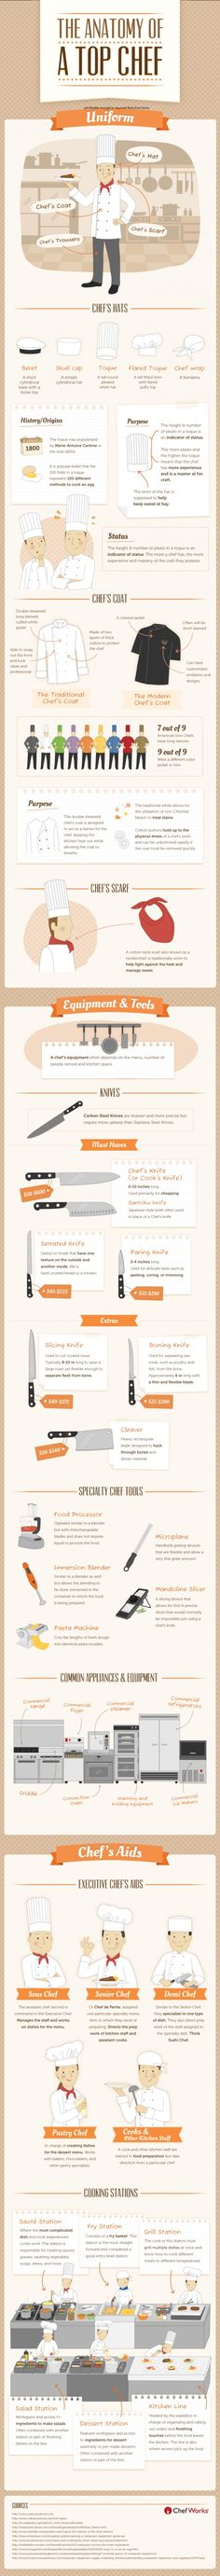 The Anatomy of a Top Chef Infographic. Think this is very interesting